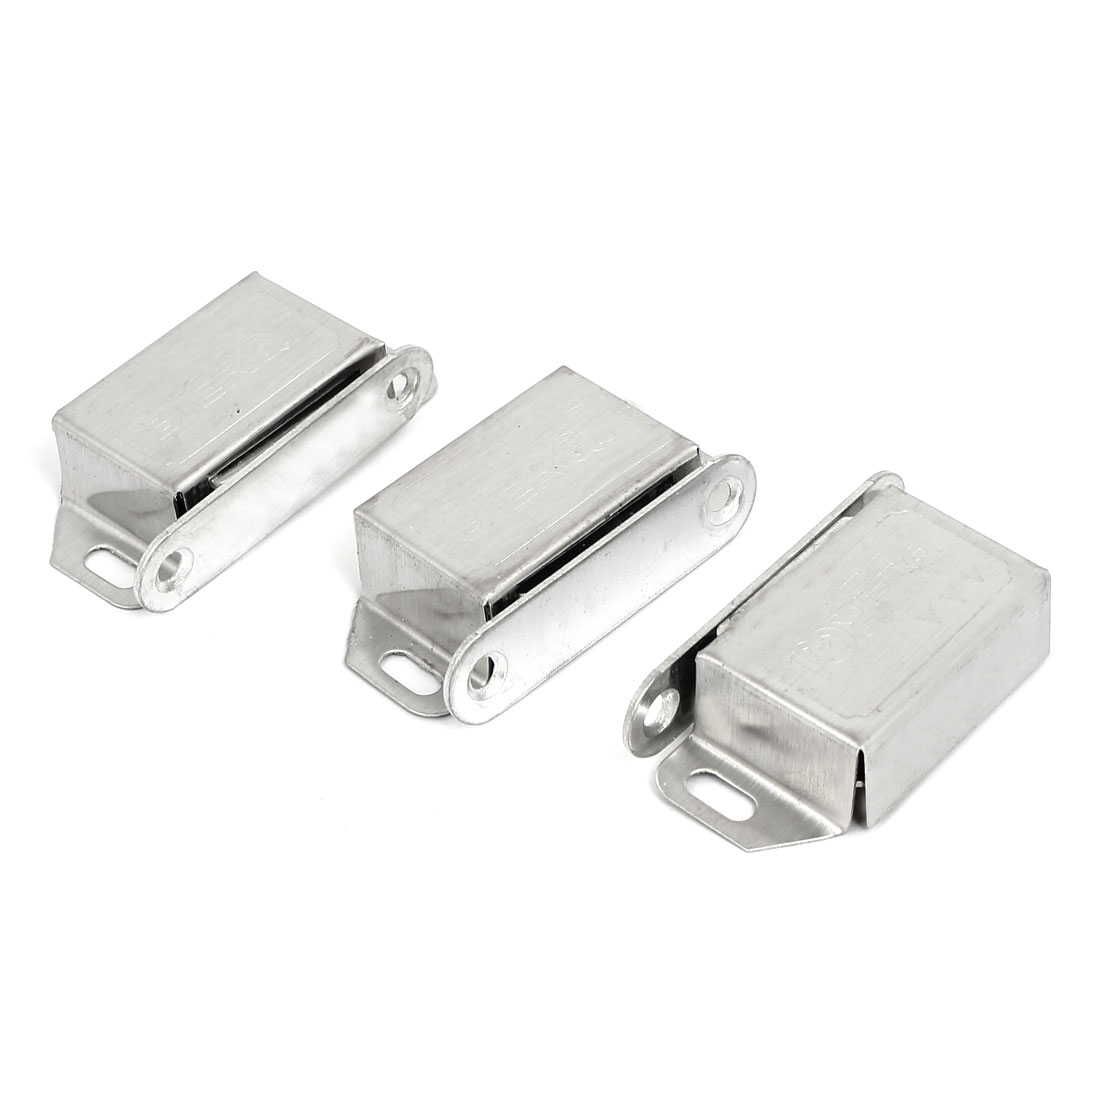 Cabinet Door Stainless Steel Shell Magnetic Catch Latch 54mmx26mmx14mm 3pcs